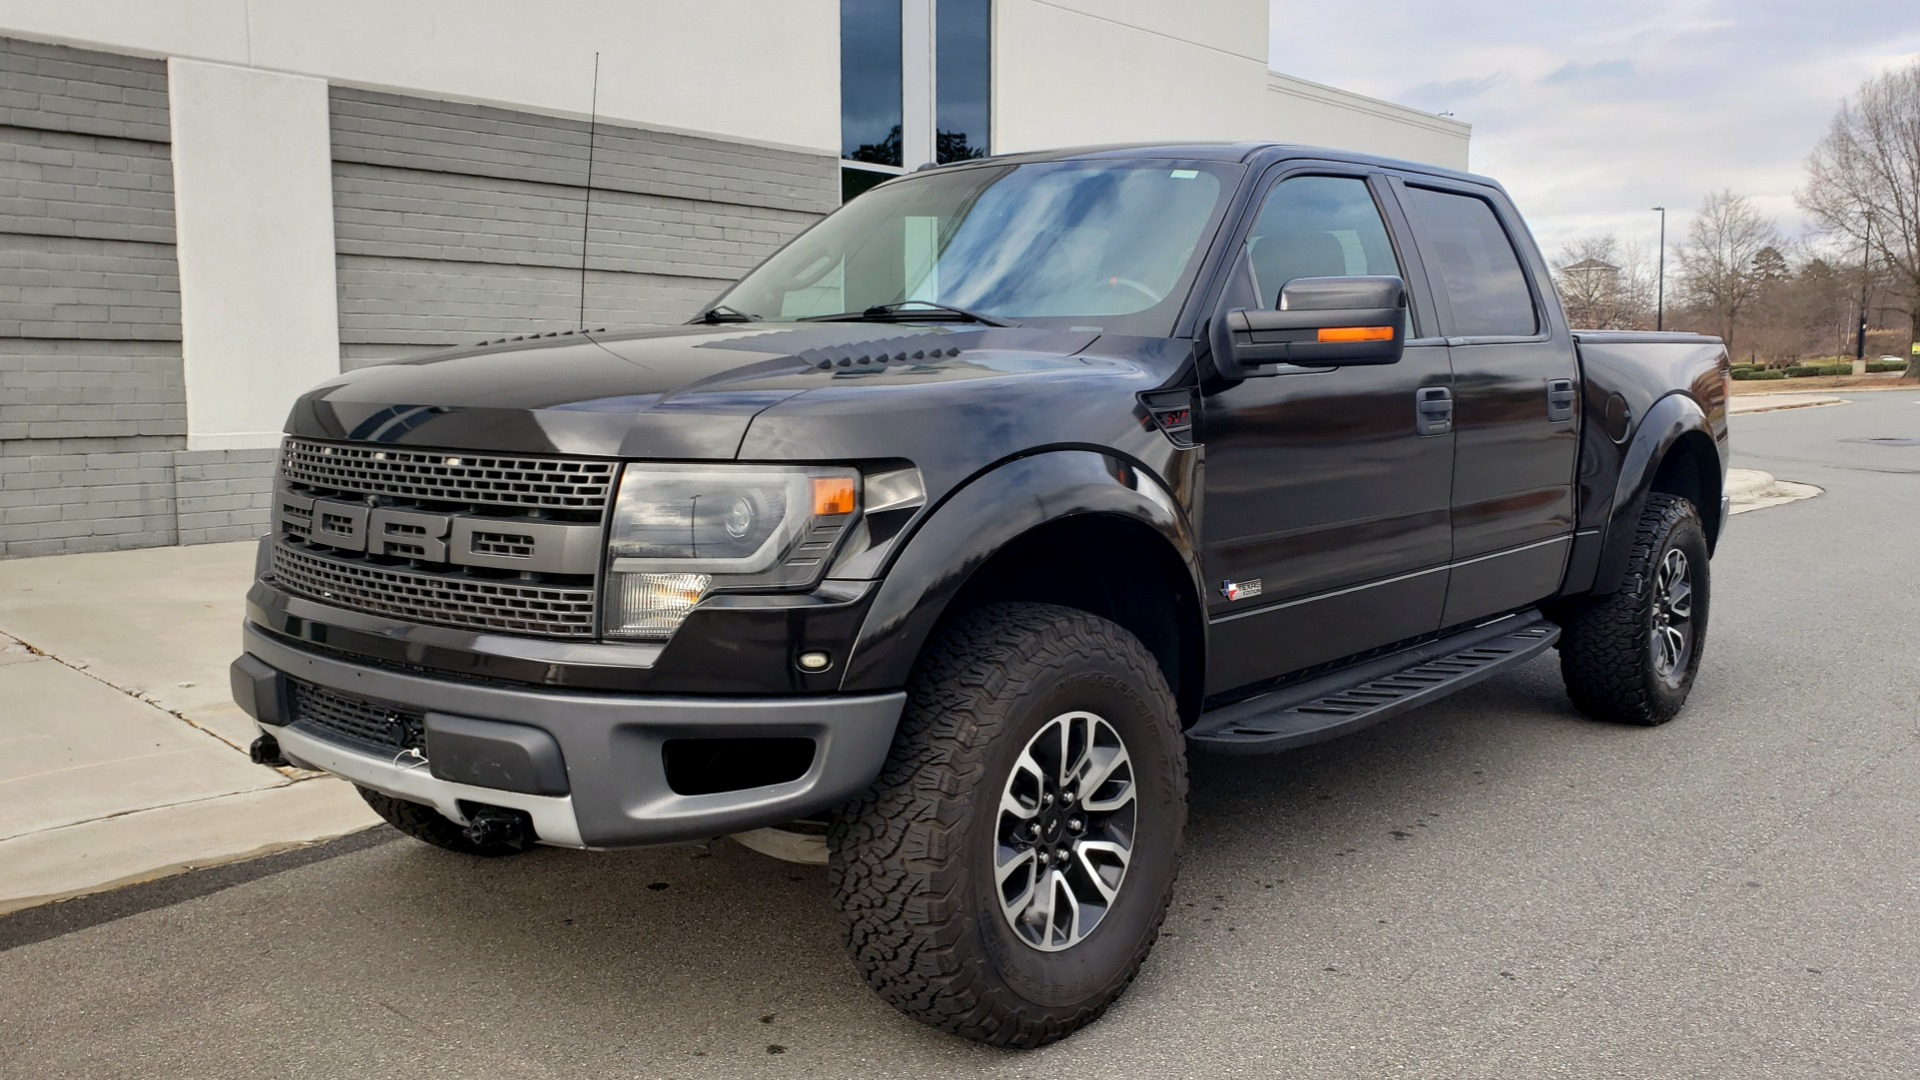 Used 2013 Ford F-150 SVT RAPTOR 4X4 SUPERCREW / 6.2L V8 / 6-SPD AUTO / NAV / LUX PKG for sale Sold at Formula Imports in Charlotte NC 28227 1